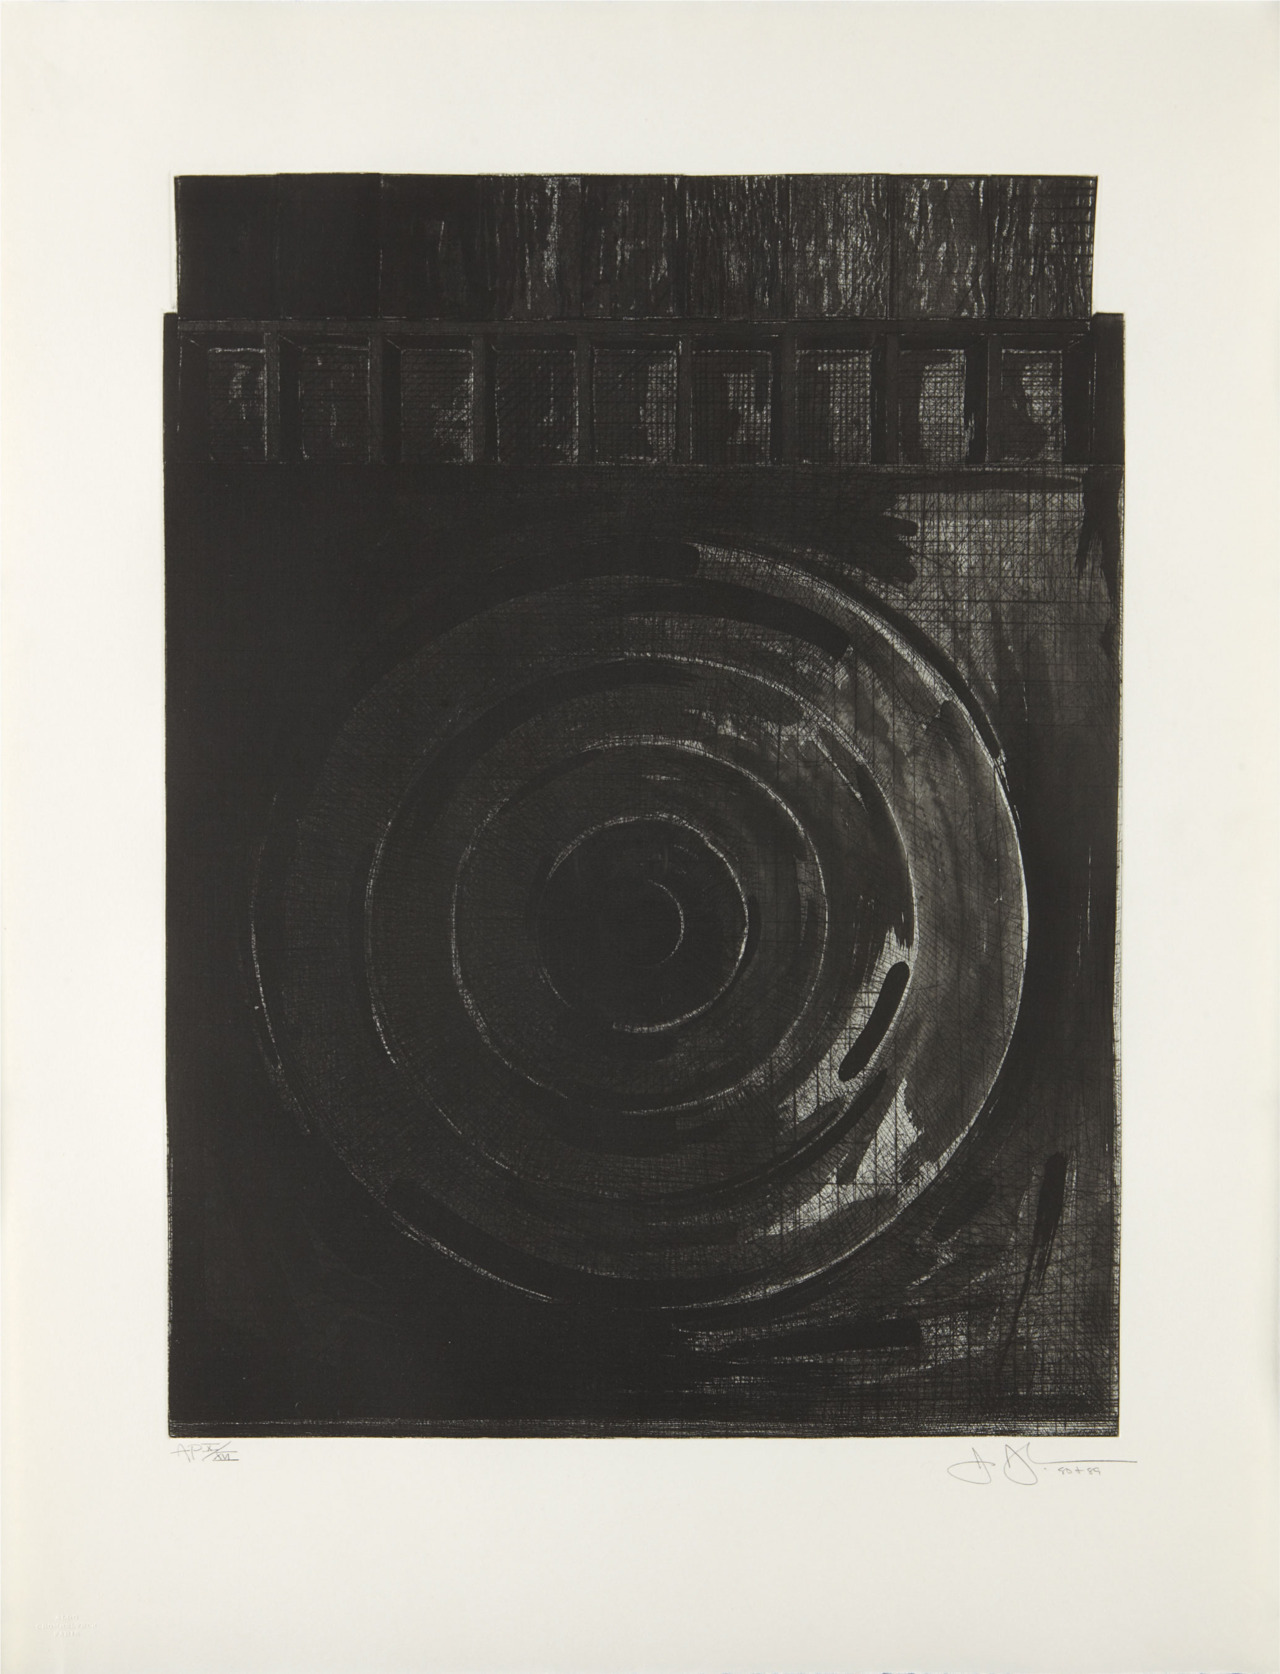 phillipsauction:  JASPER JOHNS | Target with Plaster Casts, 1990 | Etching, on German Etching paper Sold for $17,500 at the Evening Editions sale, 25 April 2012, New York.  not only is it brian eno's birthday today it's also mr johns…lets celebrate with this beautiful piece of his.